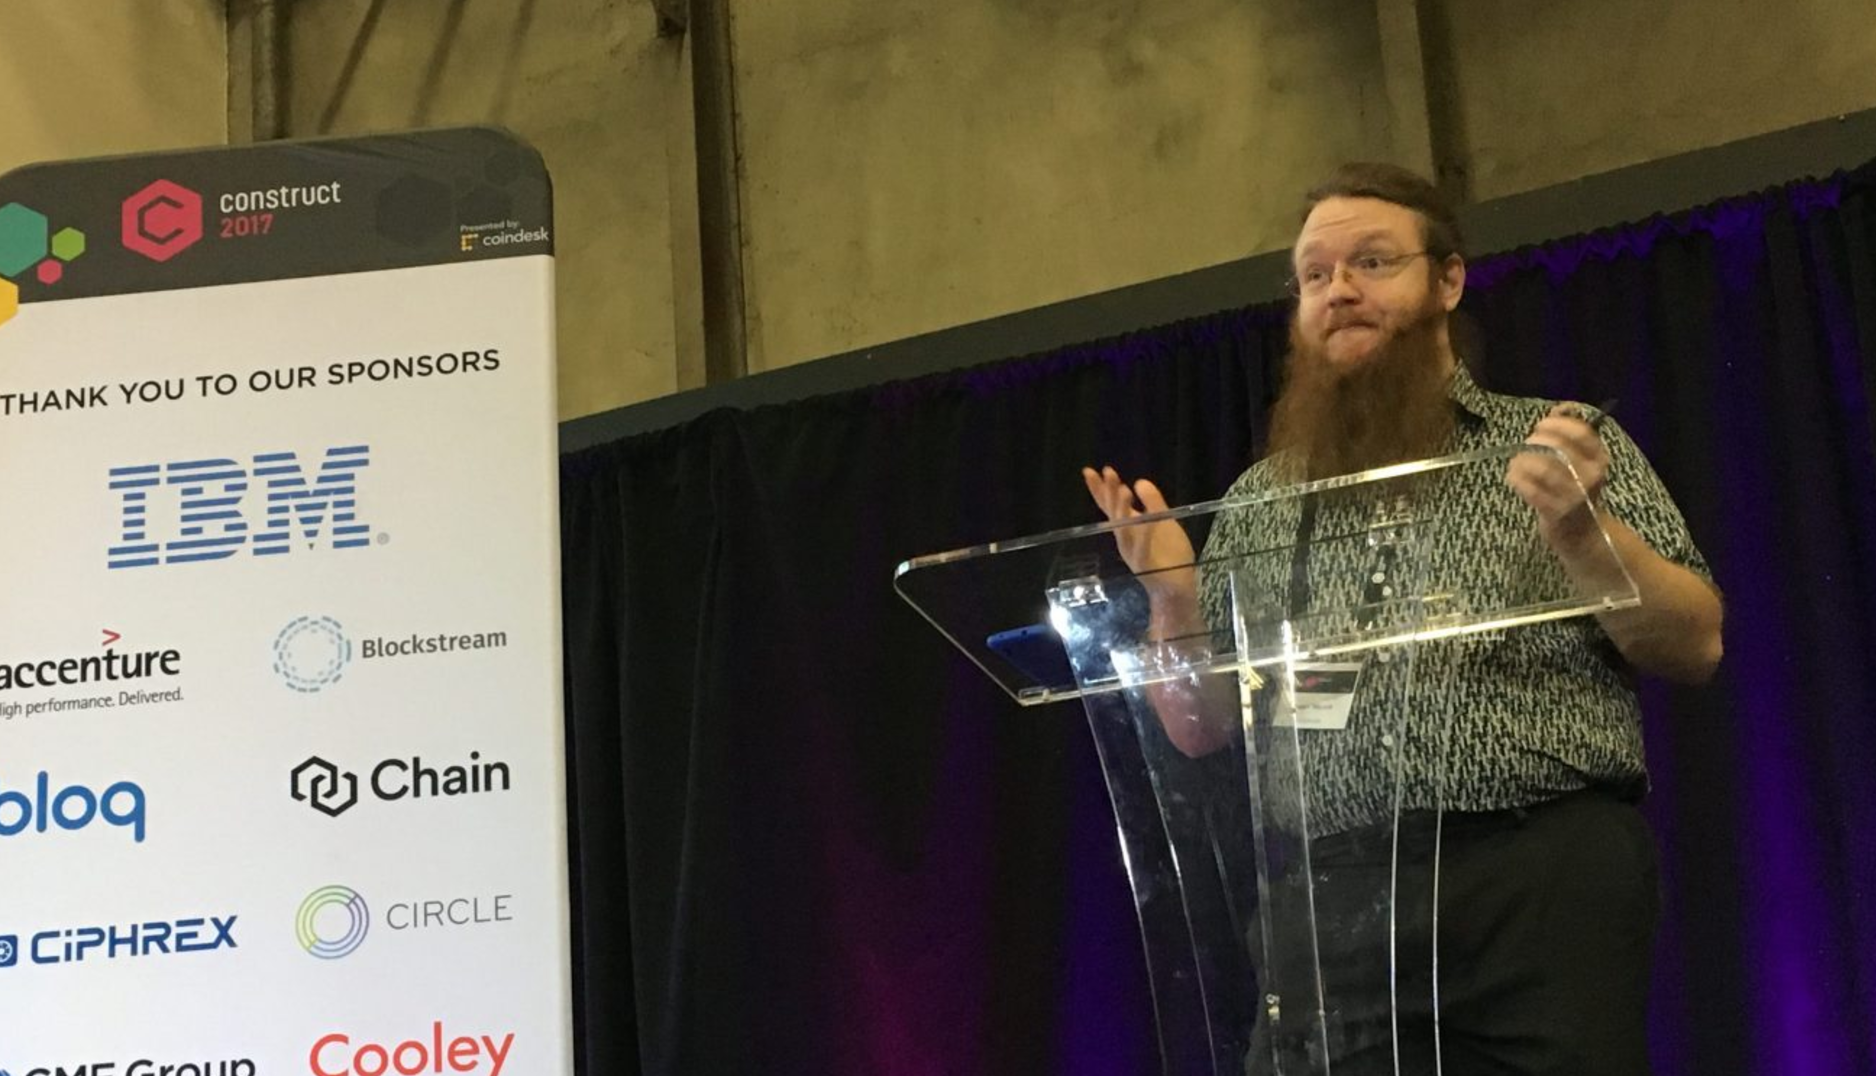 Greg Maxwell Breaks Down Blockchain: The 'Uncontrollable Noun'